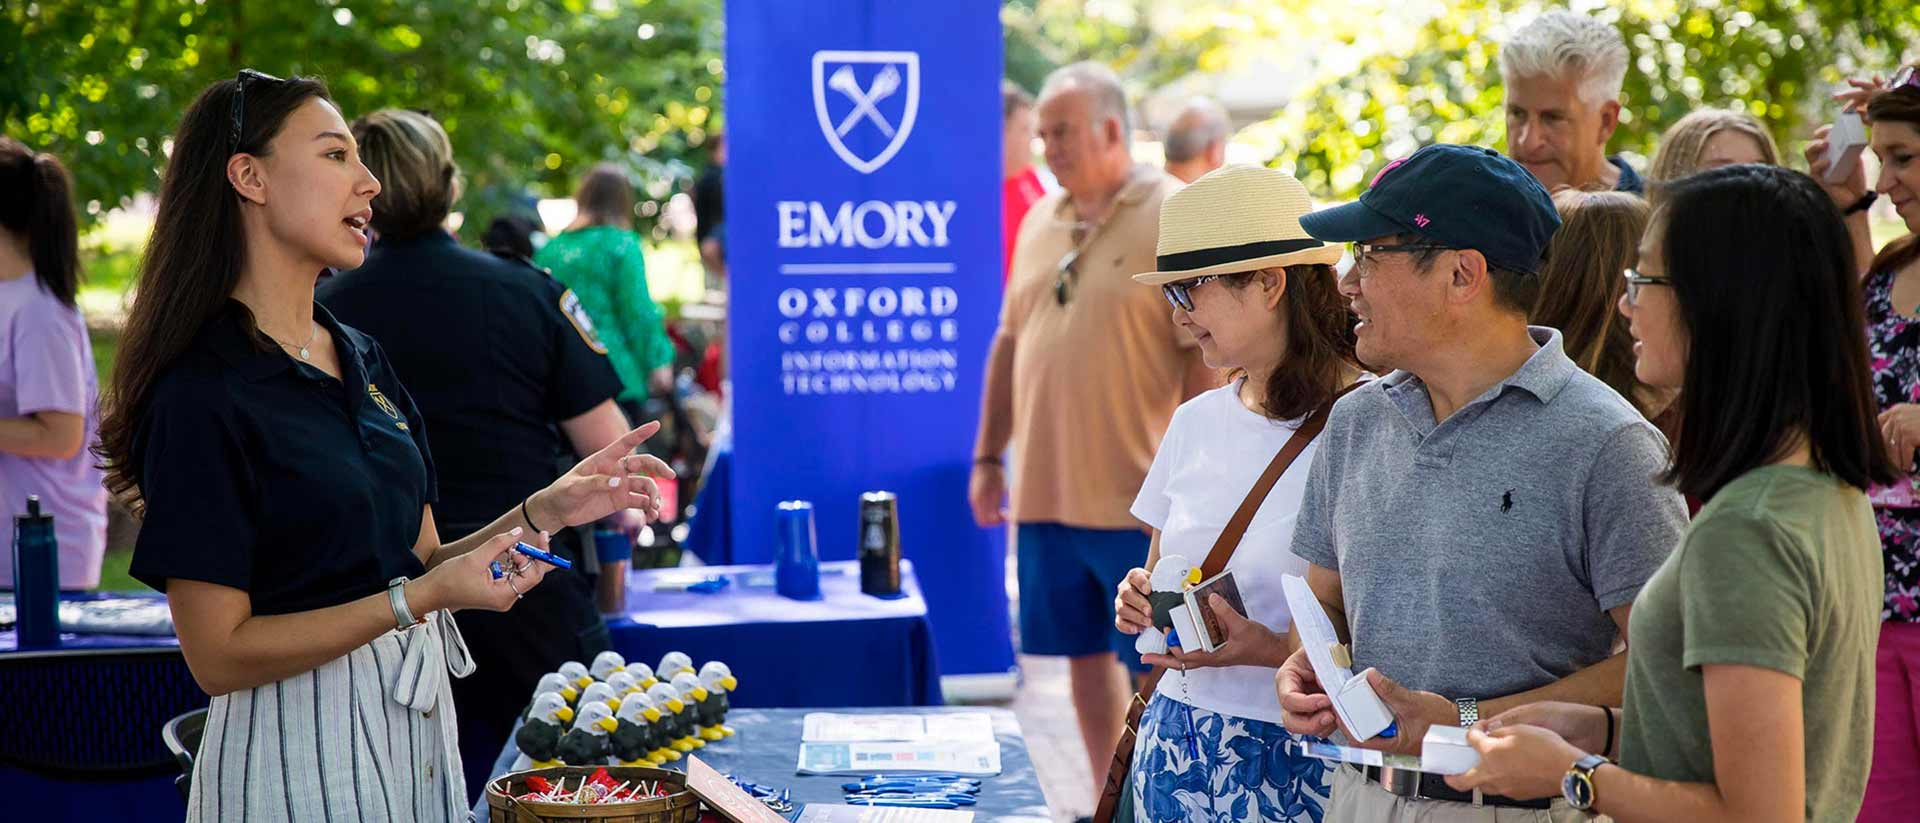 Parents engage with information at Oxford orientation.